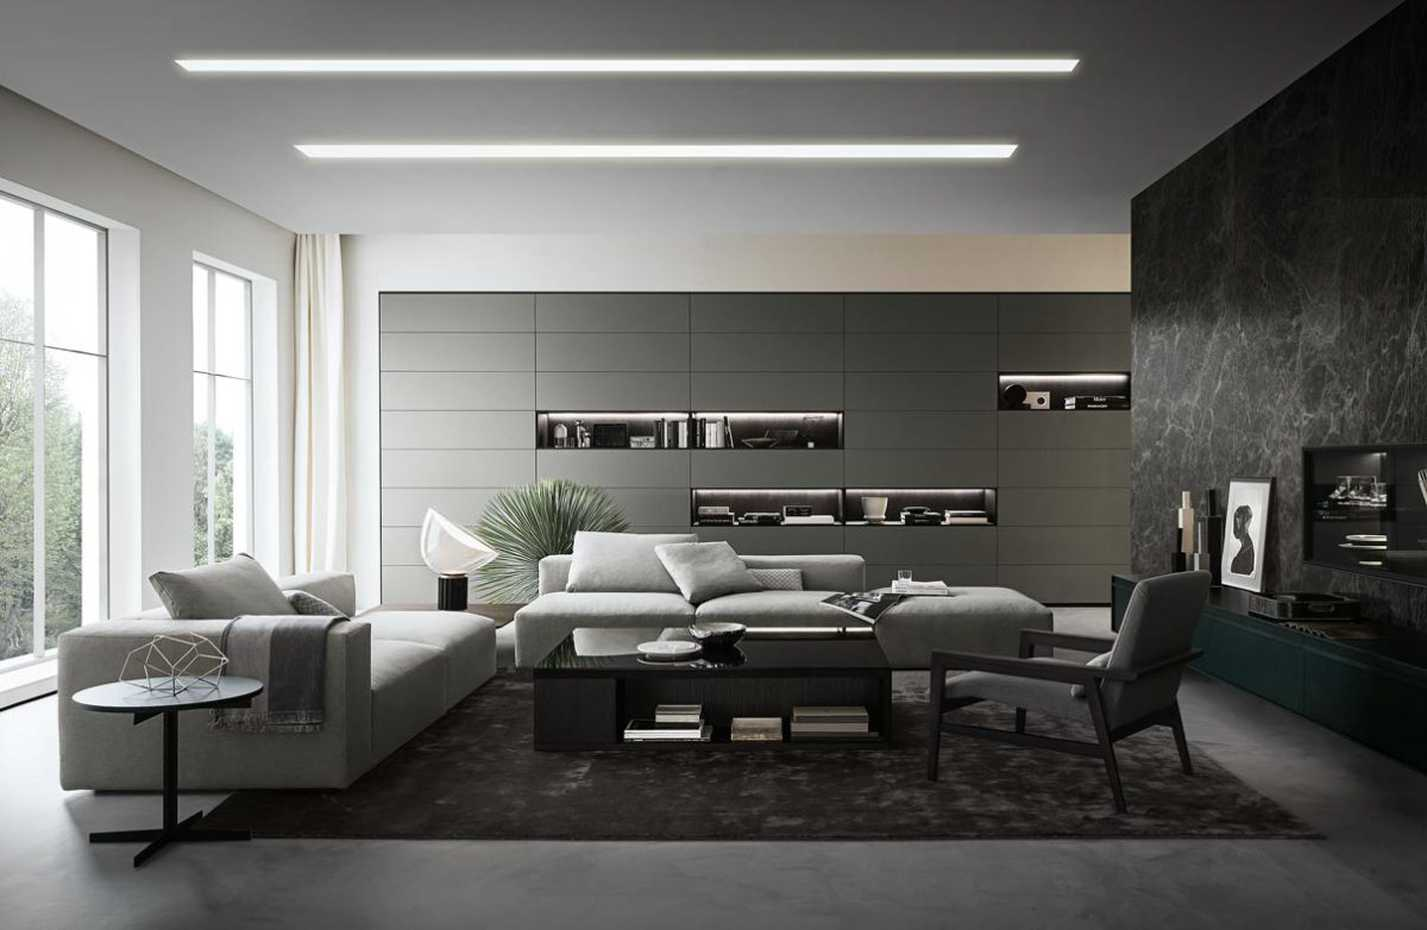 Flexus System by Giellesse product image 4